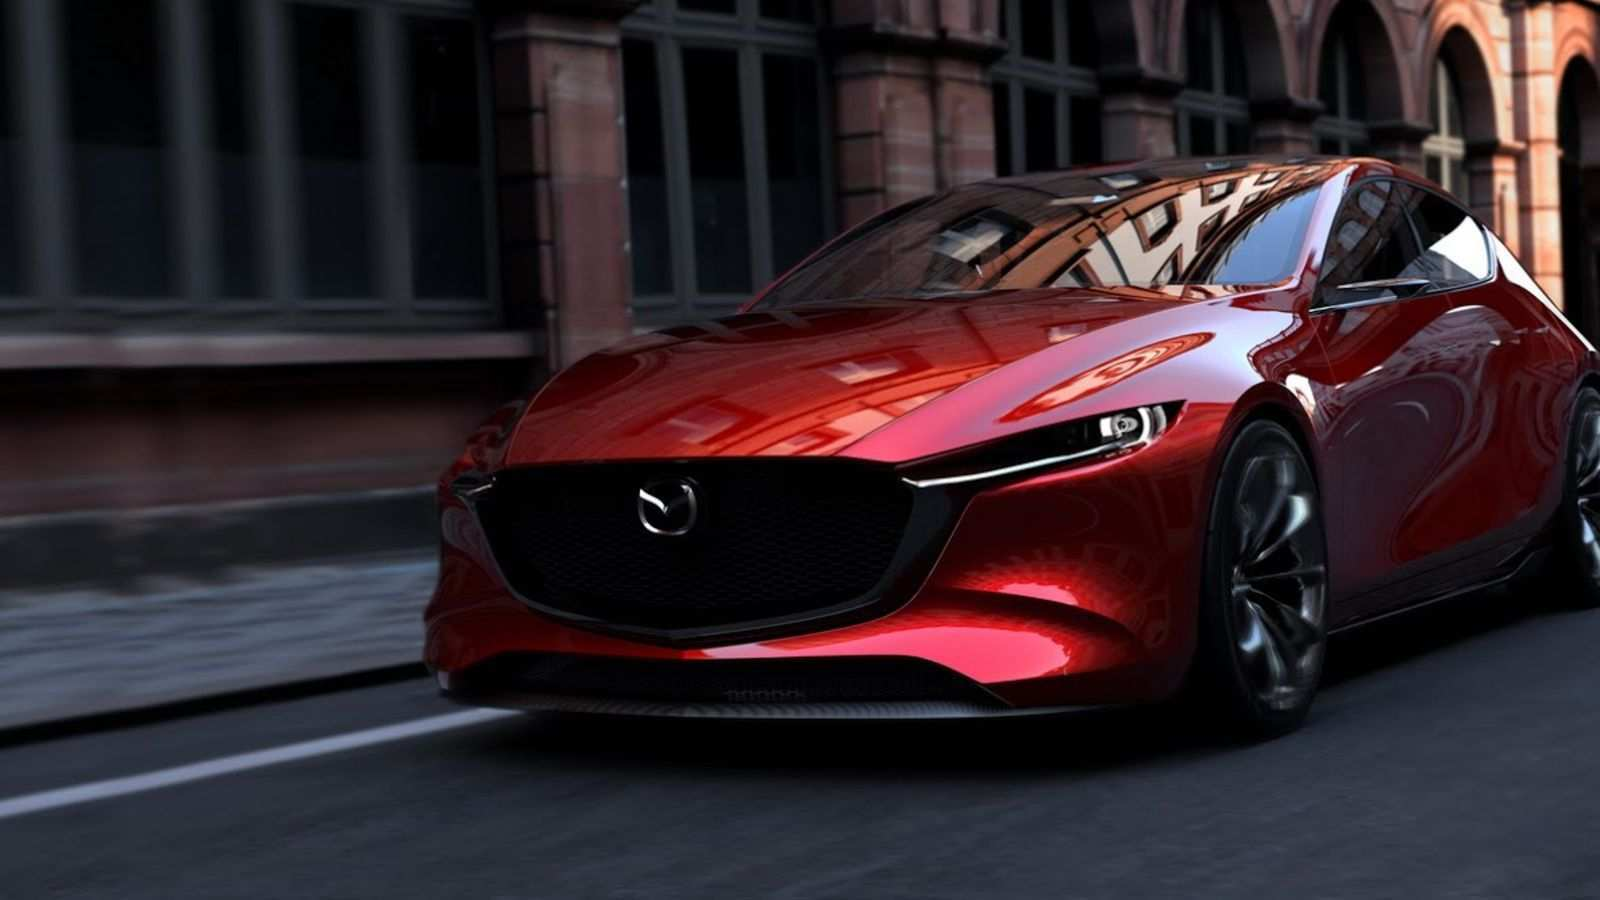 72 Great Best Mazda 3 2019 Price Release Date Price And Review New Review by Best Mazda 3 2019 Price Release Date Price And Review